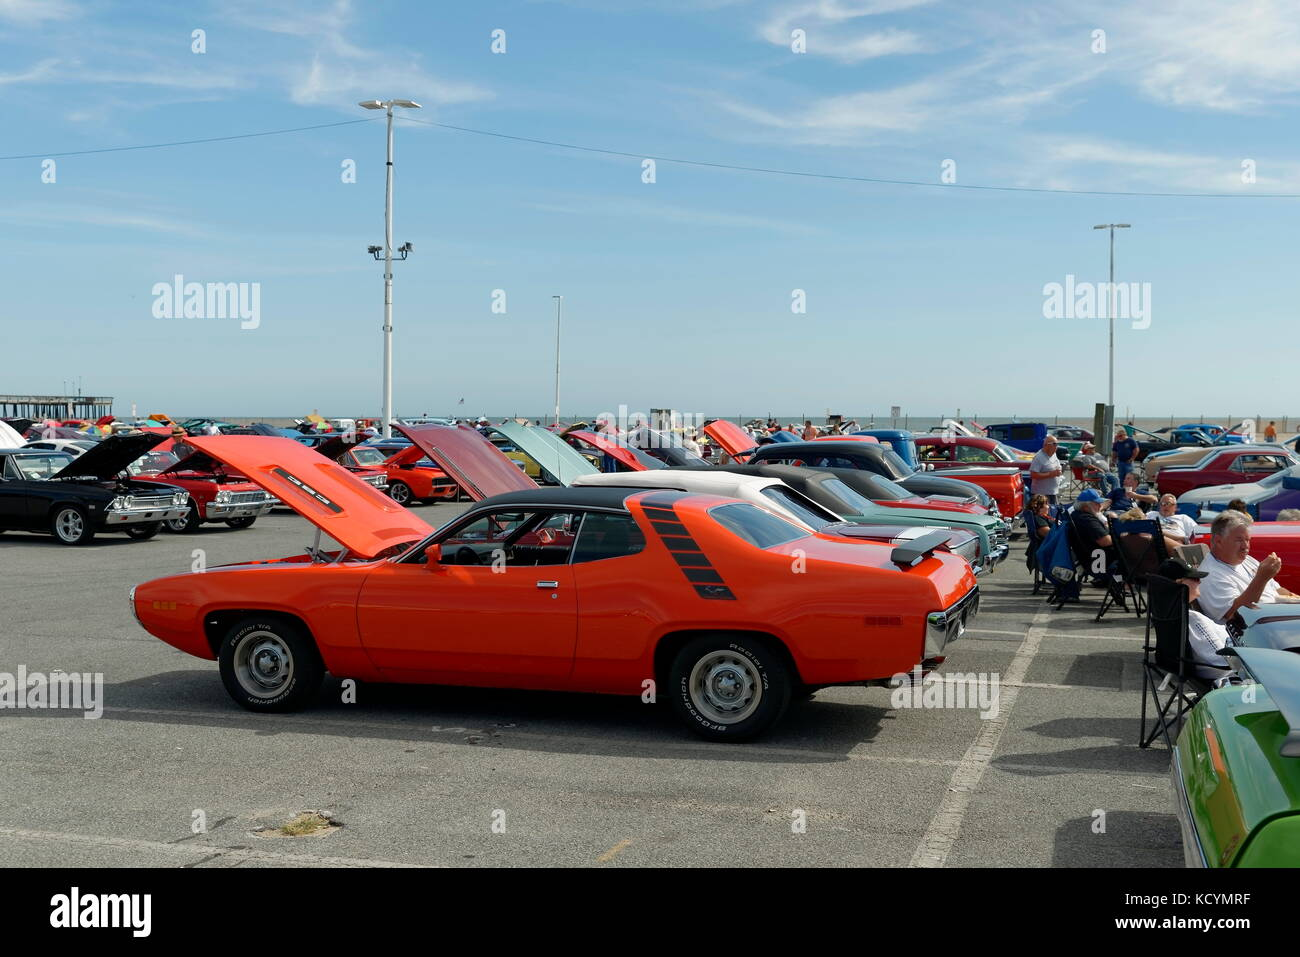 Cars on display at the Inlet, at the Ocean City, Maryland Hot Rod ...